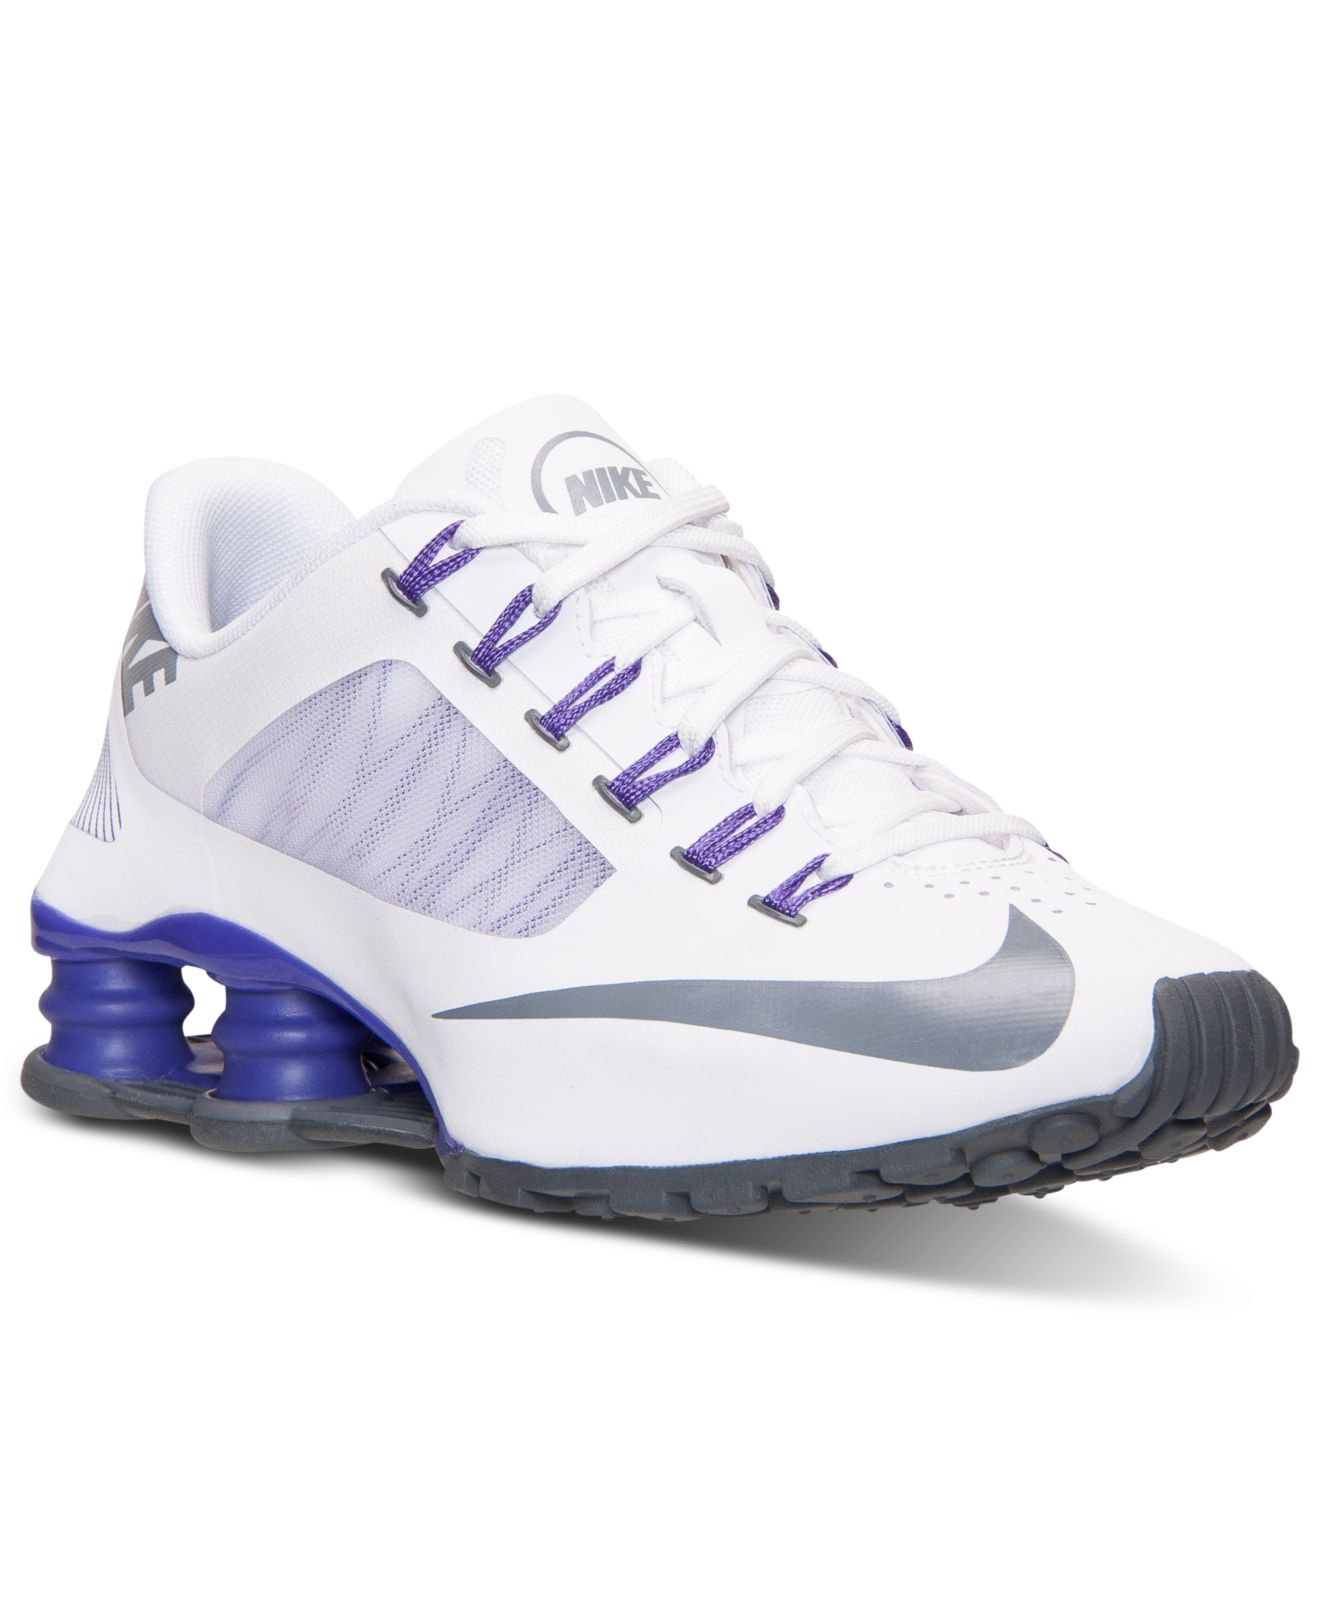 Macys Womens Nike Shoes Air Max